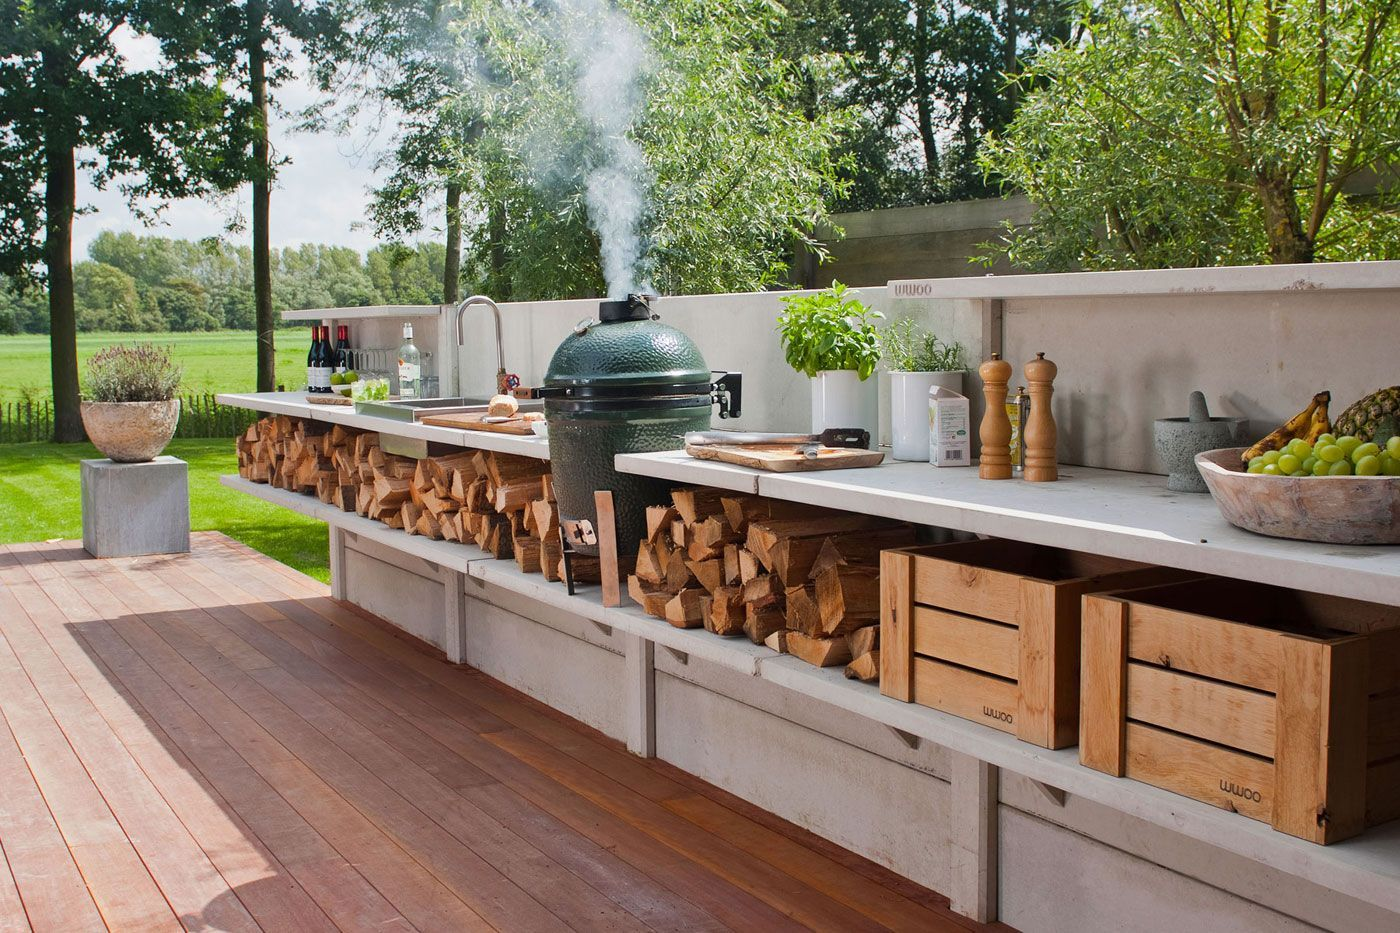 21 Gorgeous Outdoor Kitchen Ideas That Ll Put Your Indoor Setup To Shame In 2020 Diy Outdoor Kitchen Small Outdoor Kitchens Outdoor Kitchen Appliances